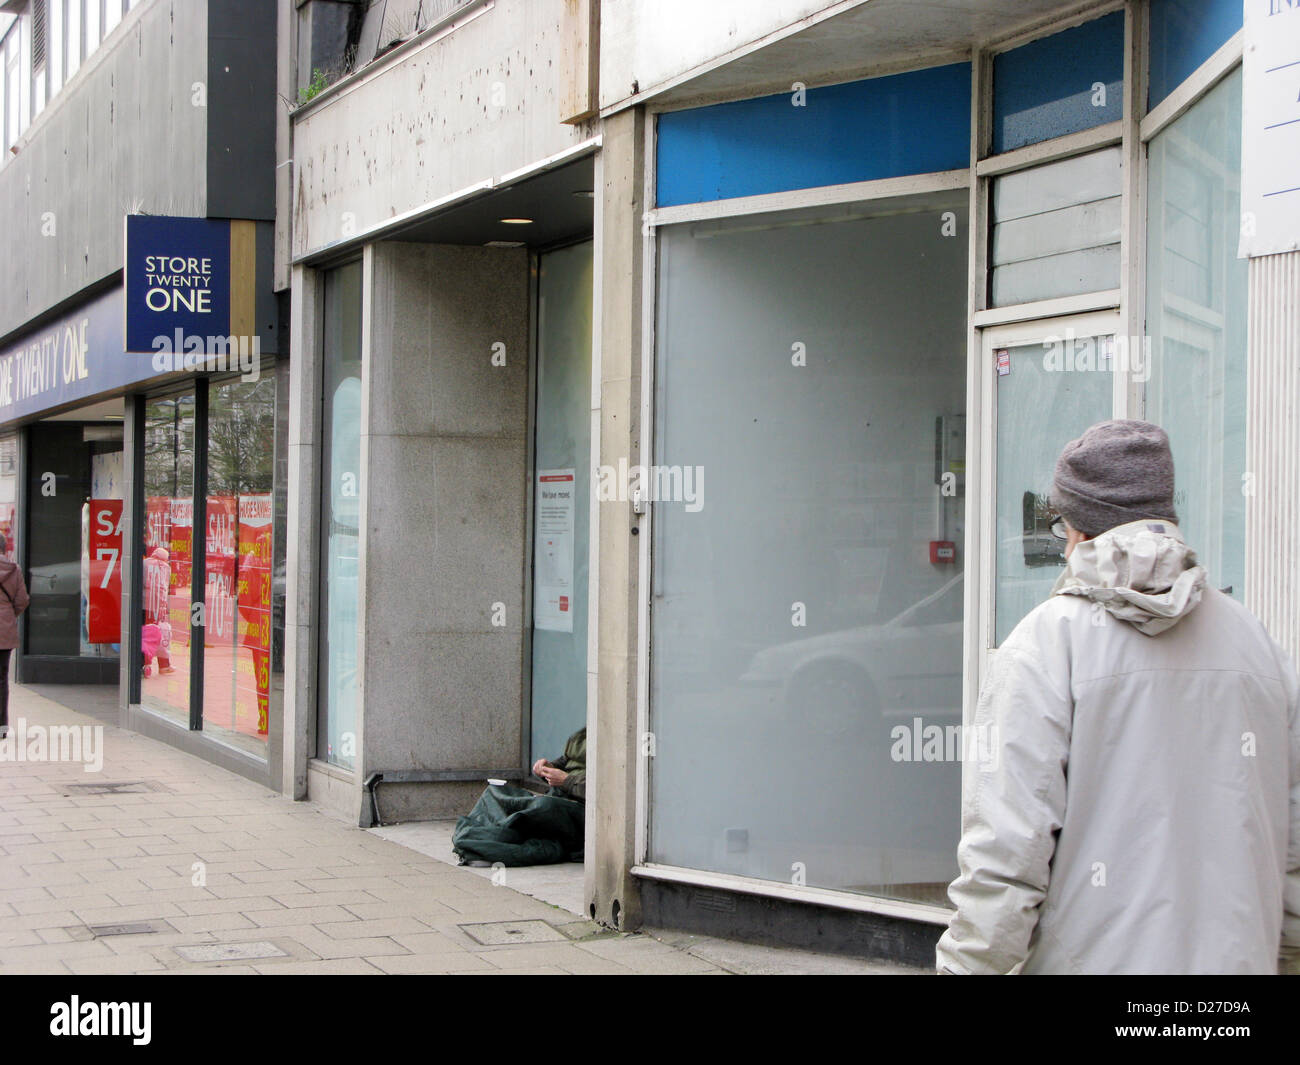 Unoccupied empty retail stores in the high street Worthing West Sussex UK - Stock Image